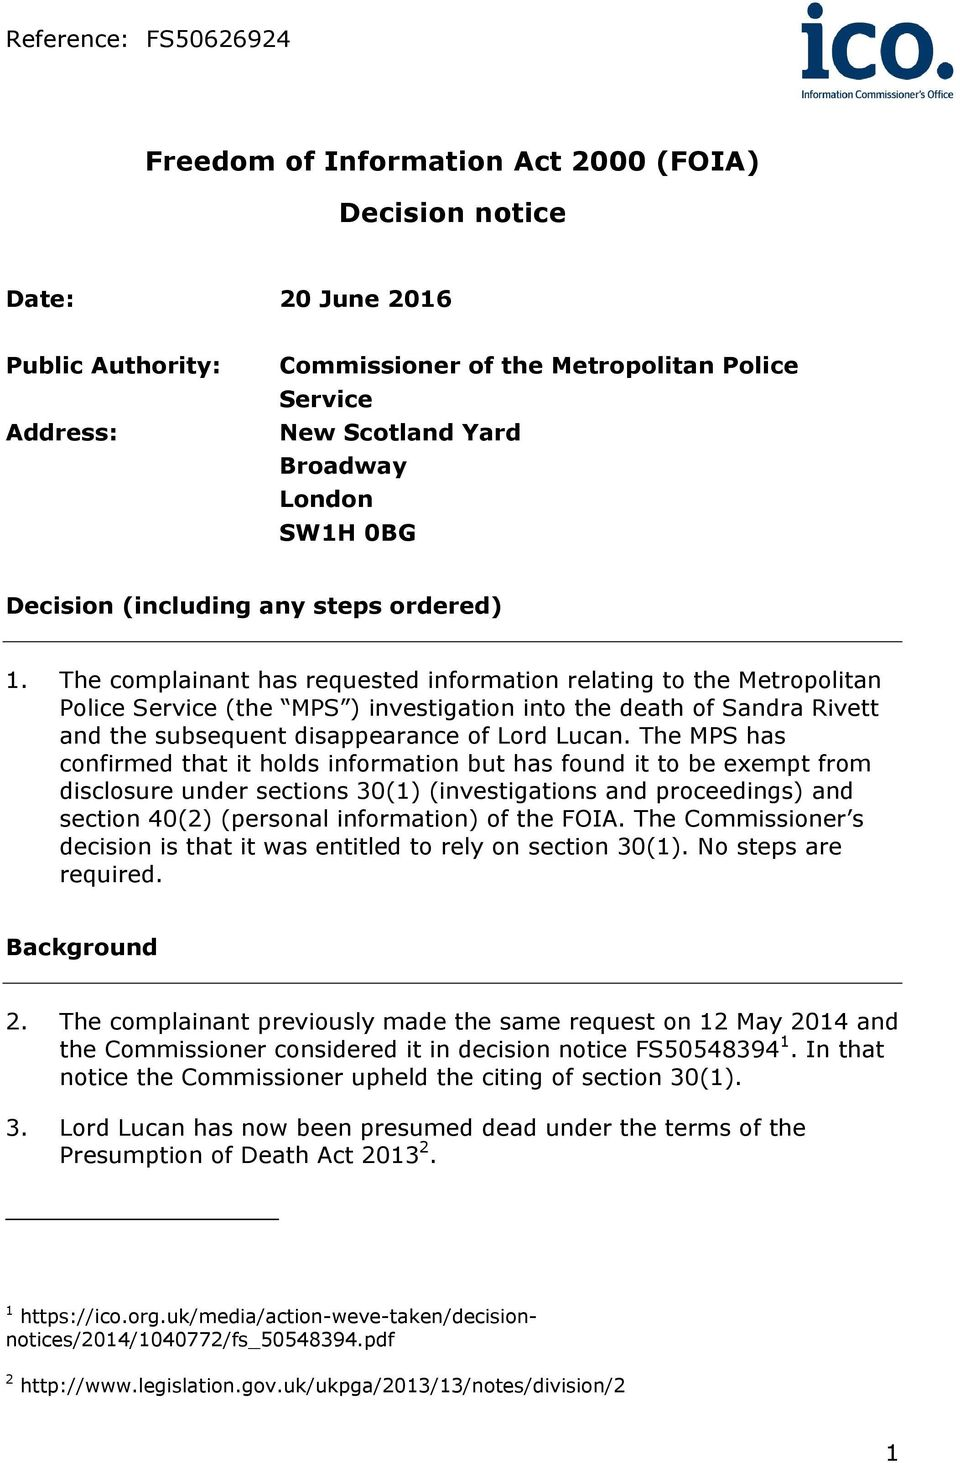 The complainant has requested information relating to the Metropolitan Police Service (the MPS ) investigation into the death of Sandra Rivett and the subsequent disappearance of Lord Lucan.